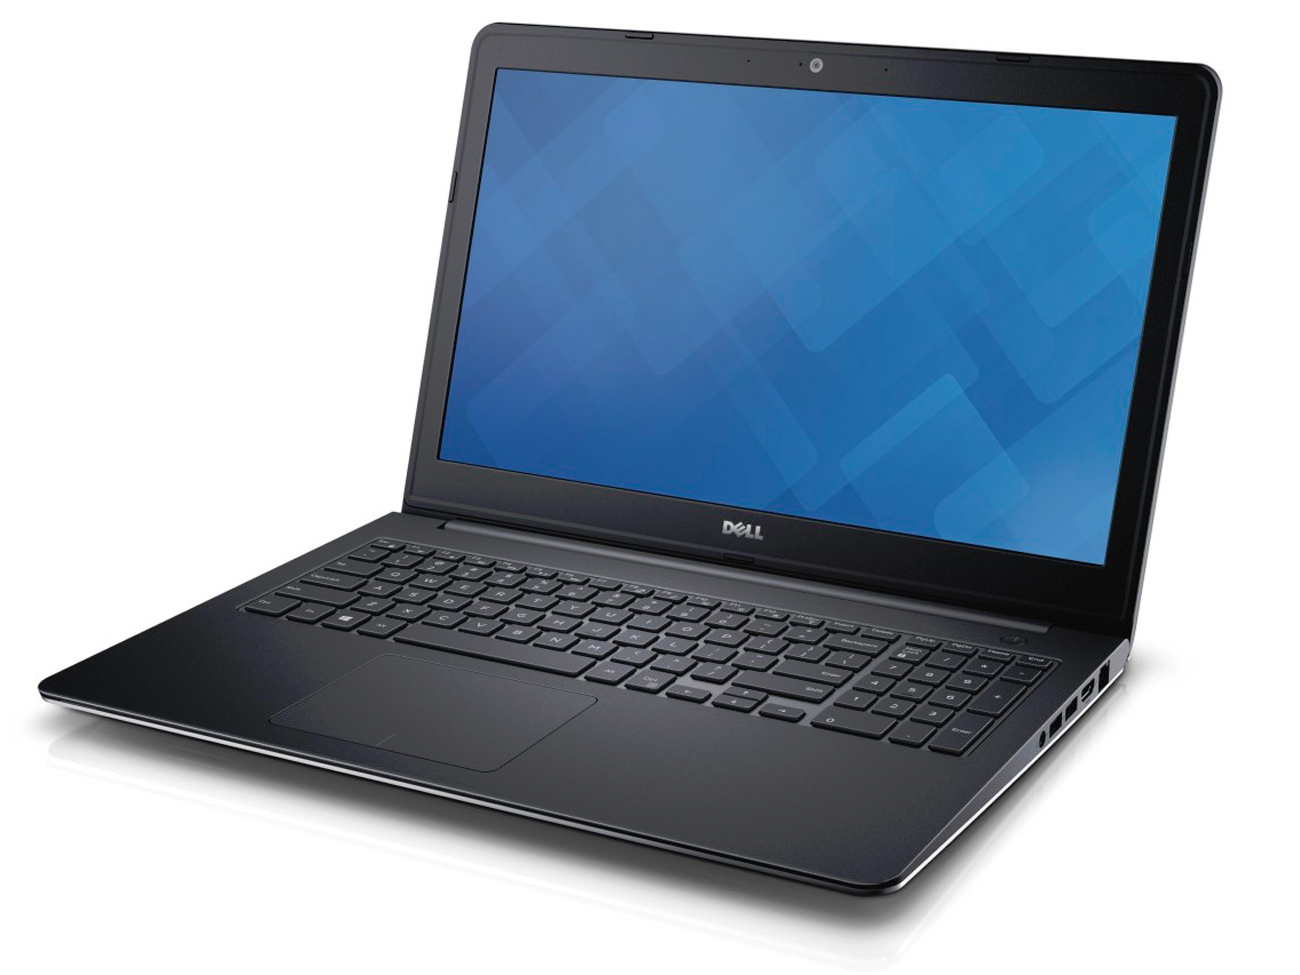 Hp probook 4530s ci3 500gb price in pakistan specifications - Notebook Dell Inspiron 15 5548 Inspiron 15 Series Processor Intel Core